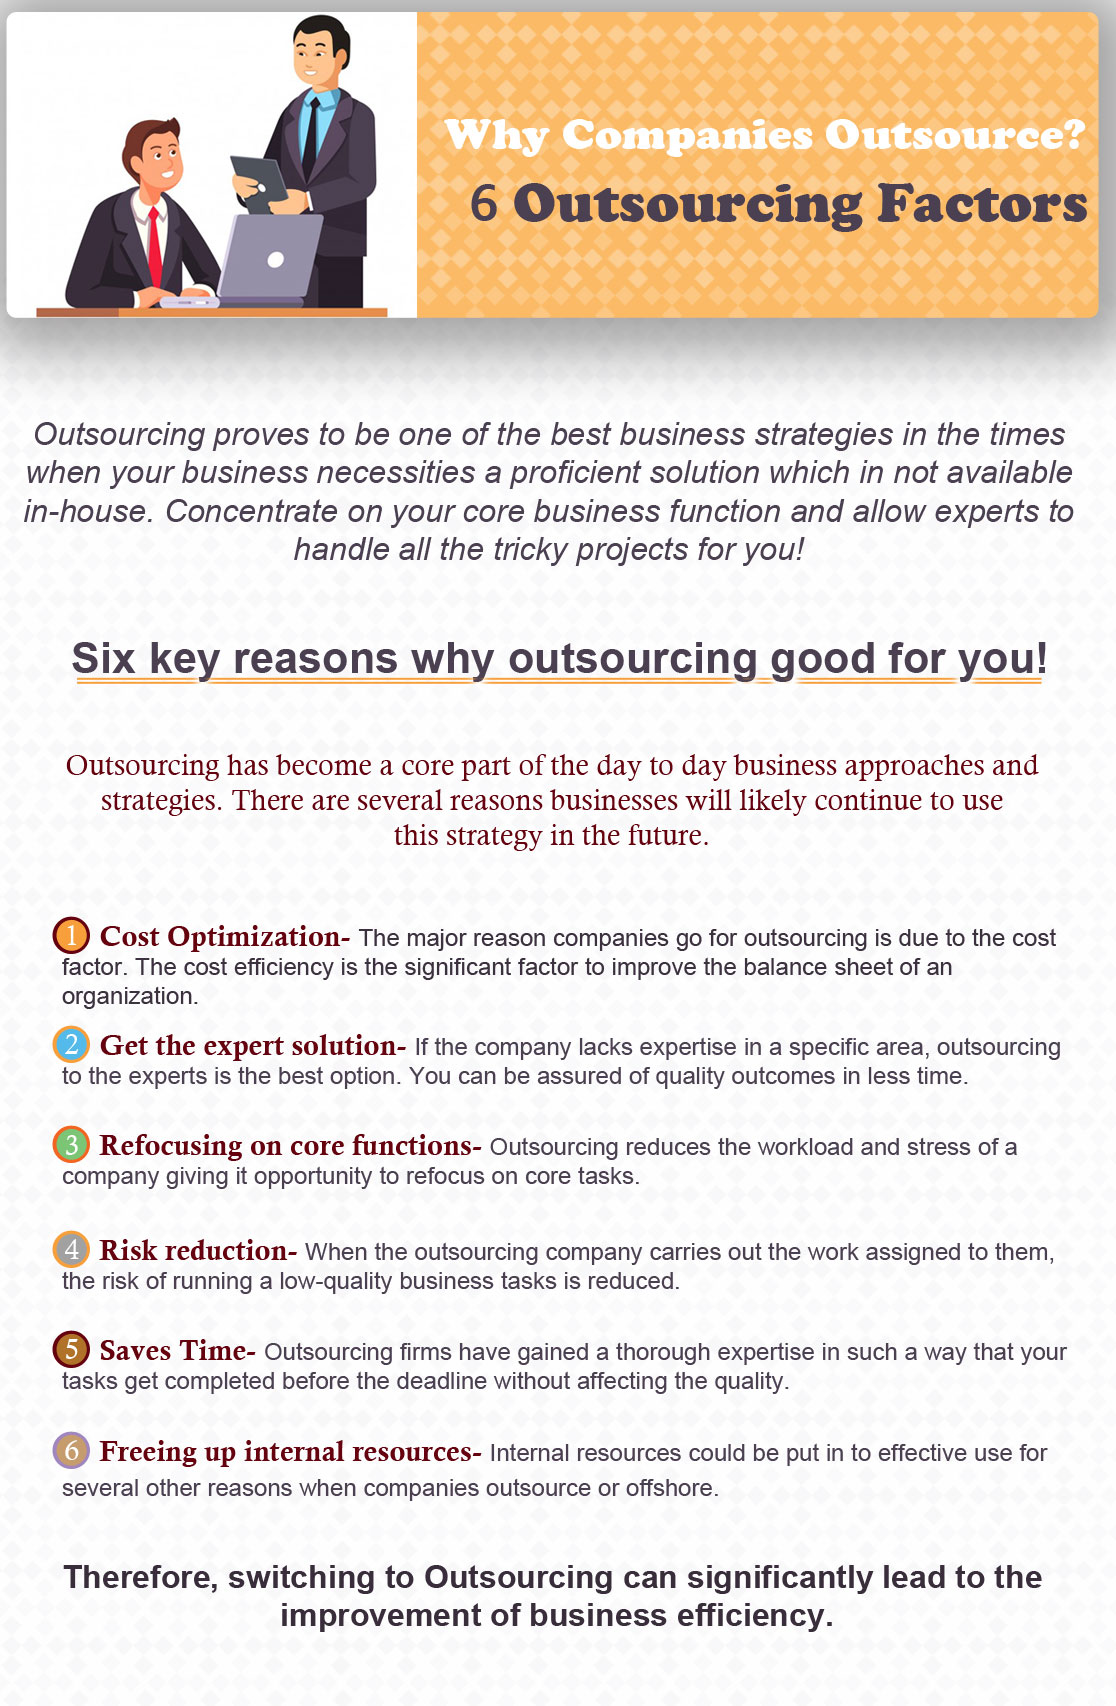 Outsourcing firms